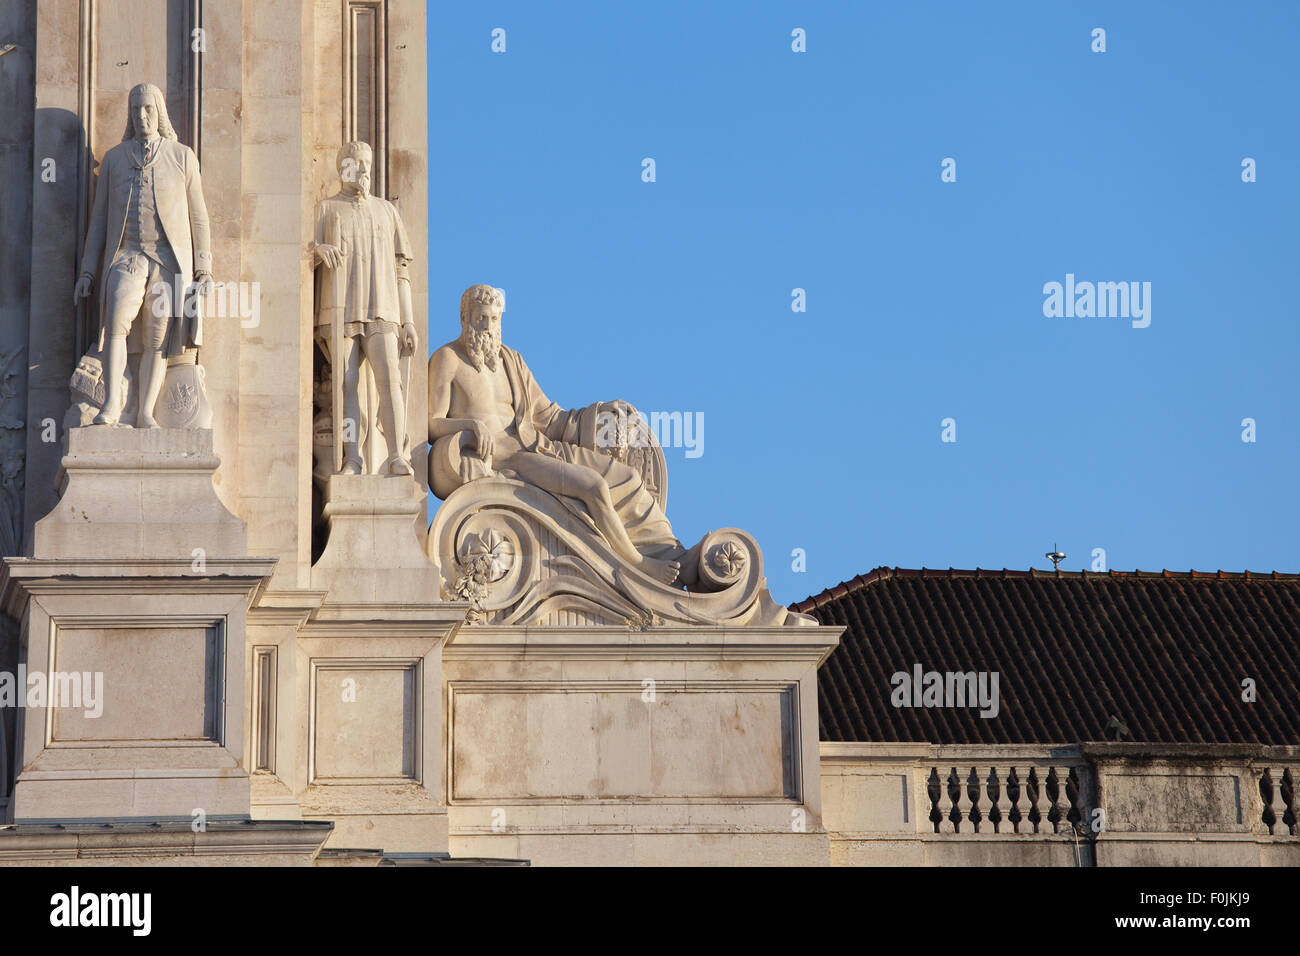 Statues at Rua Augusta Arch in Lisbon, Portugal, architectural details - Stock Image